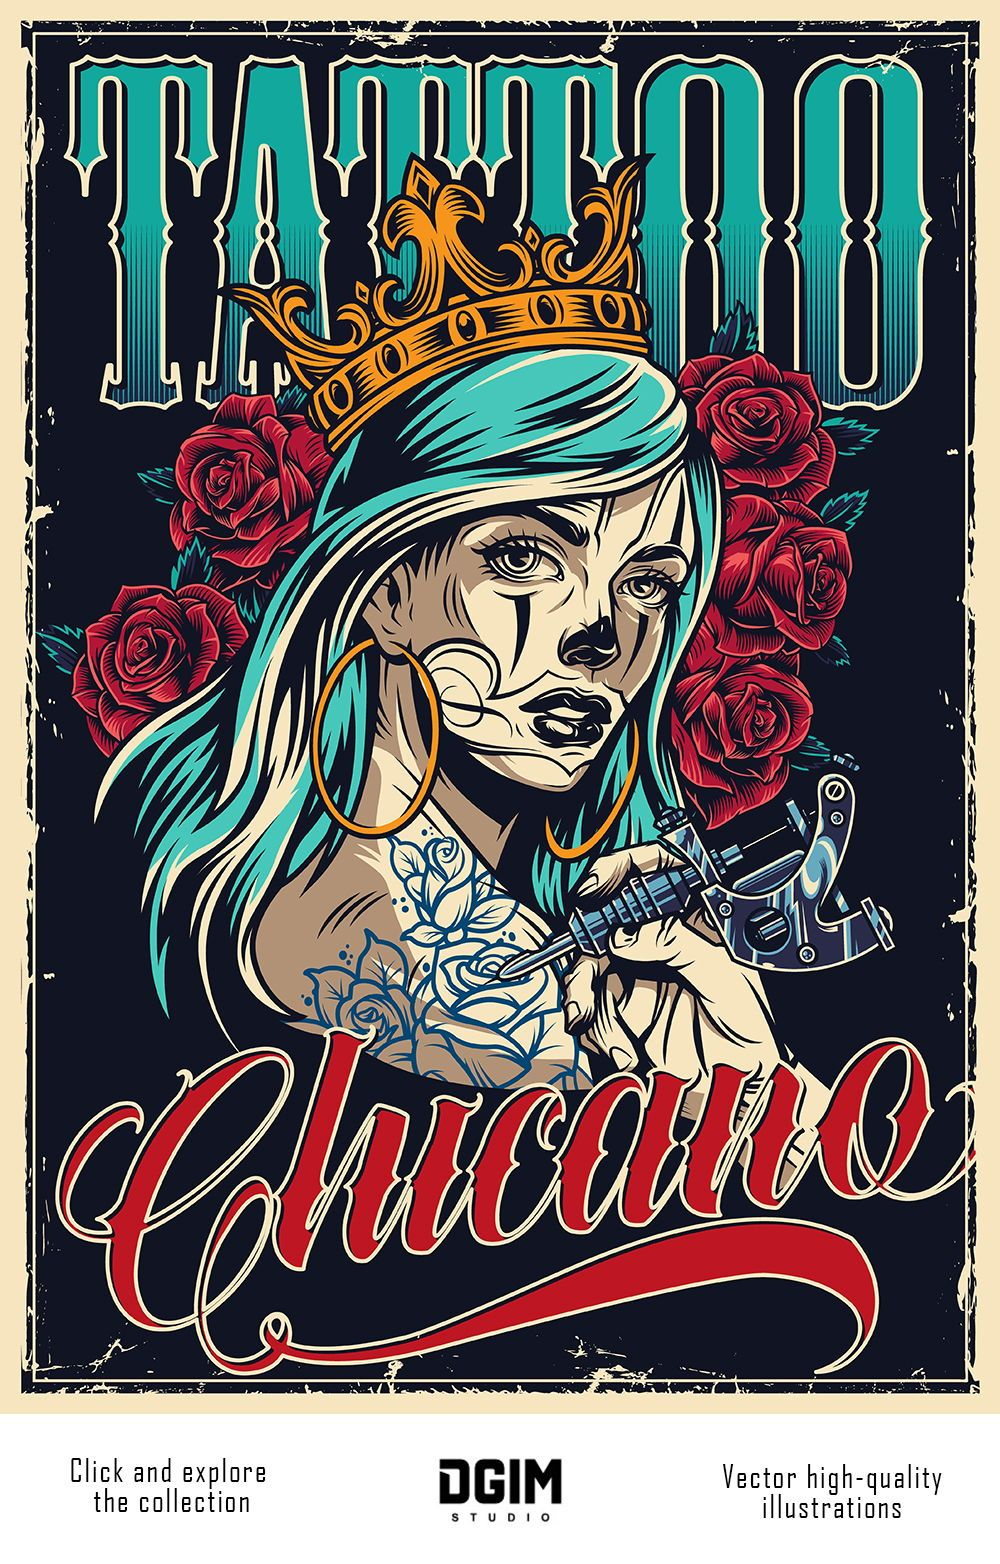 60 Chicano Vector Designs In 2020 Tattoo Posters Retro Tattoos Chicano